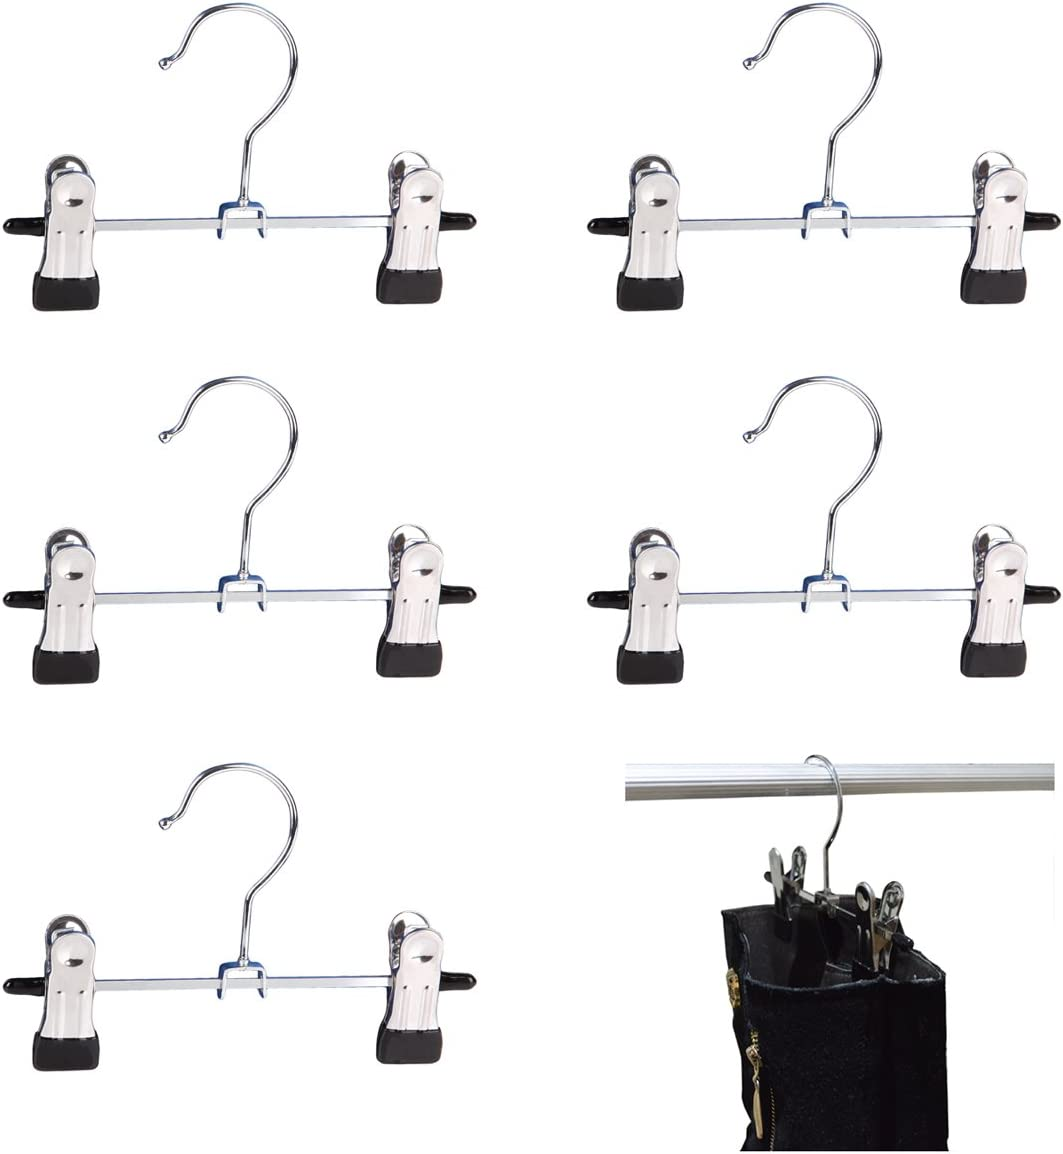 Adjustable 6 inches Double Clip Boot Hanger, Portable Travel Hanging Laundry Hooks, Set of 5